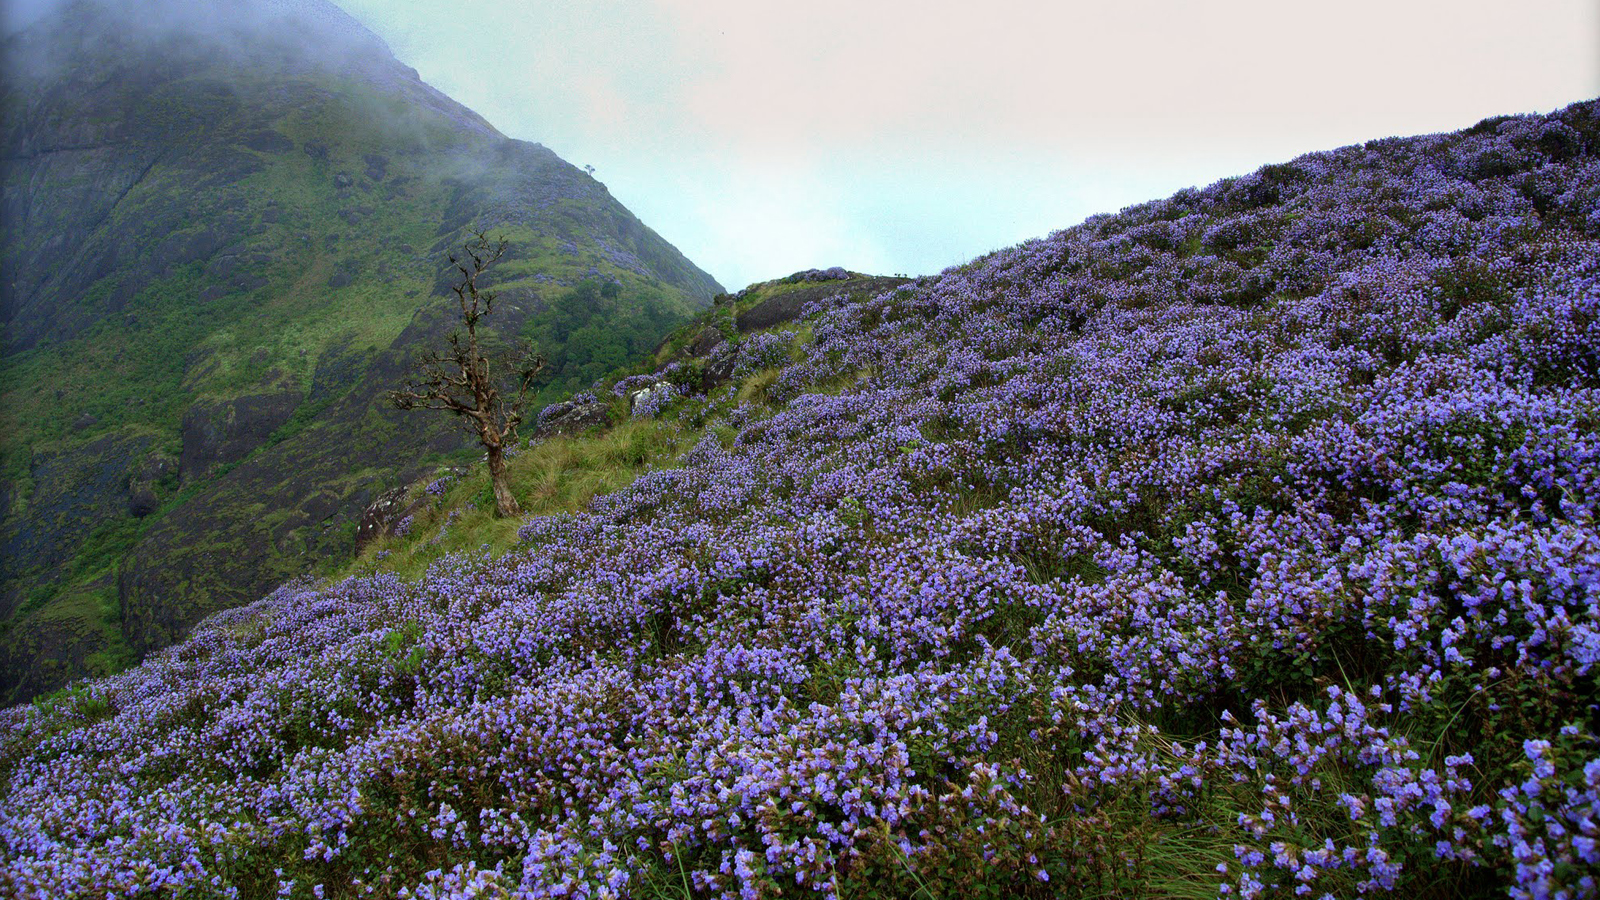 The Neelakurinji flower in bloom in the Western Ghats Image credit: Muralikrishnan B